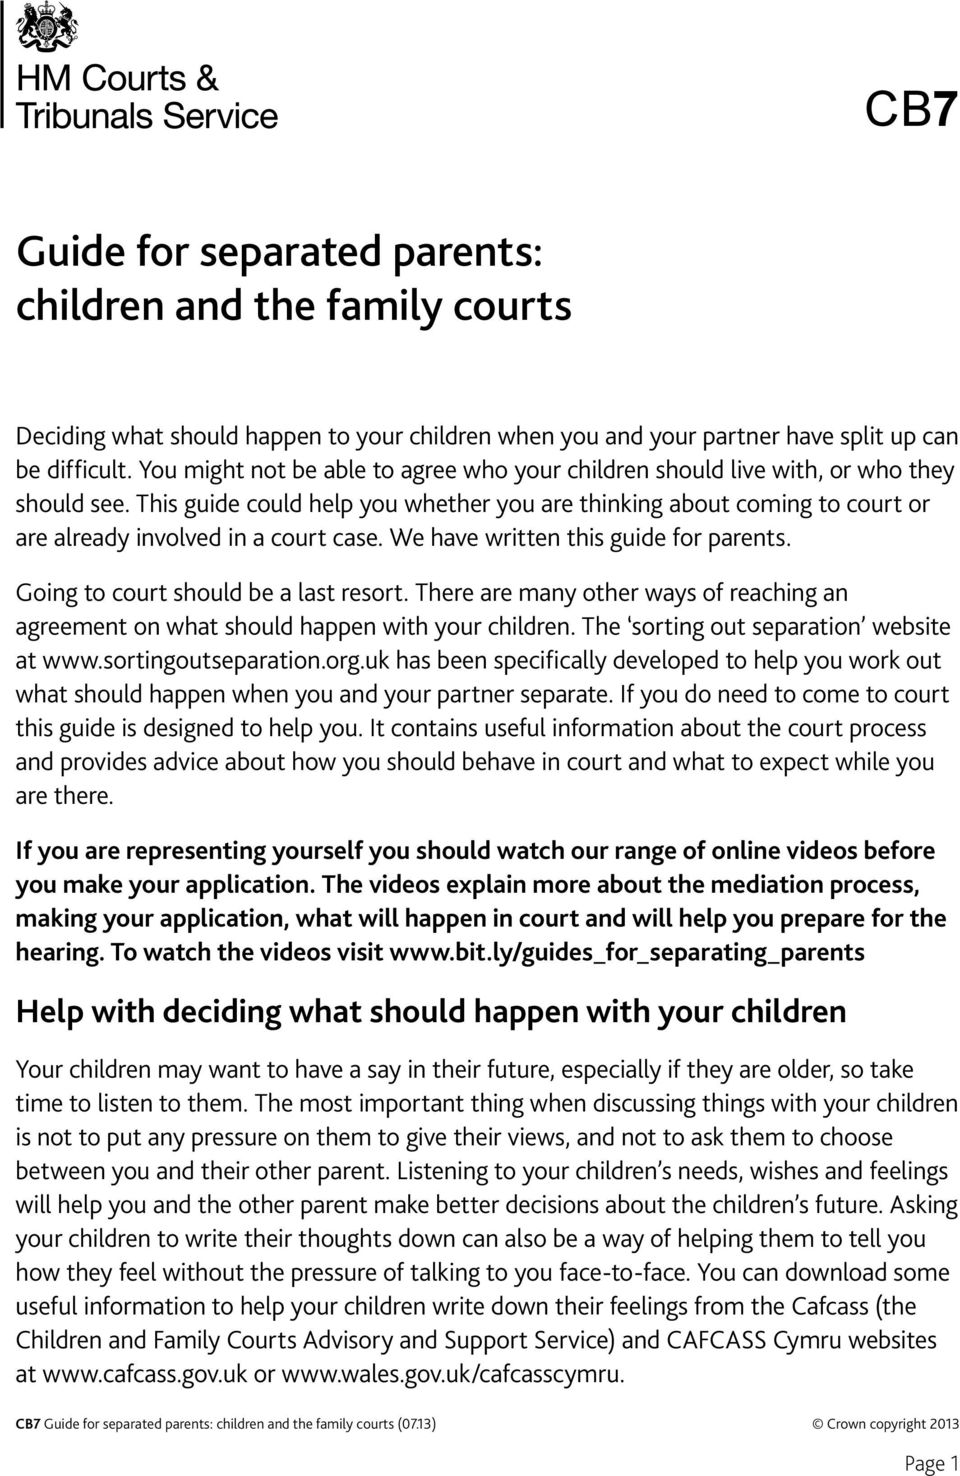 This guide could help you whether you are thinking about coming to court or are already involved in a court case. We have written this guide for parents. Going to court should be a last resort.